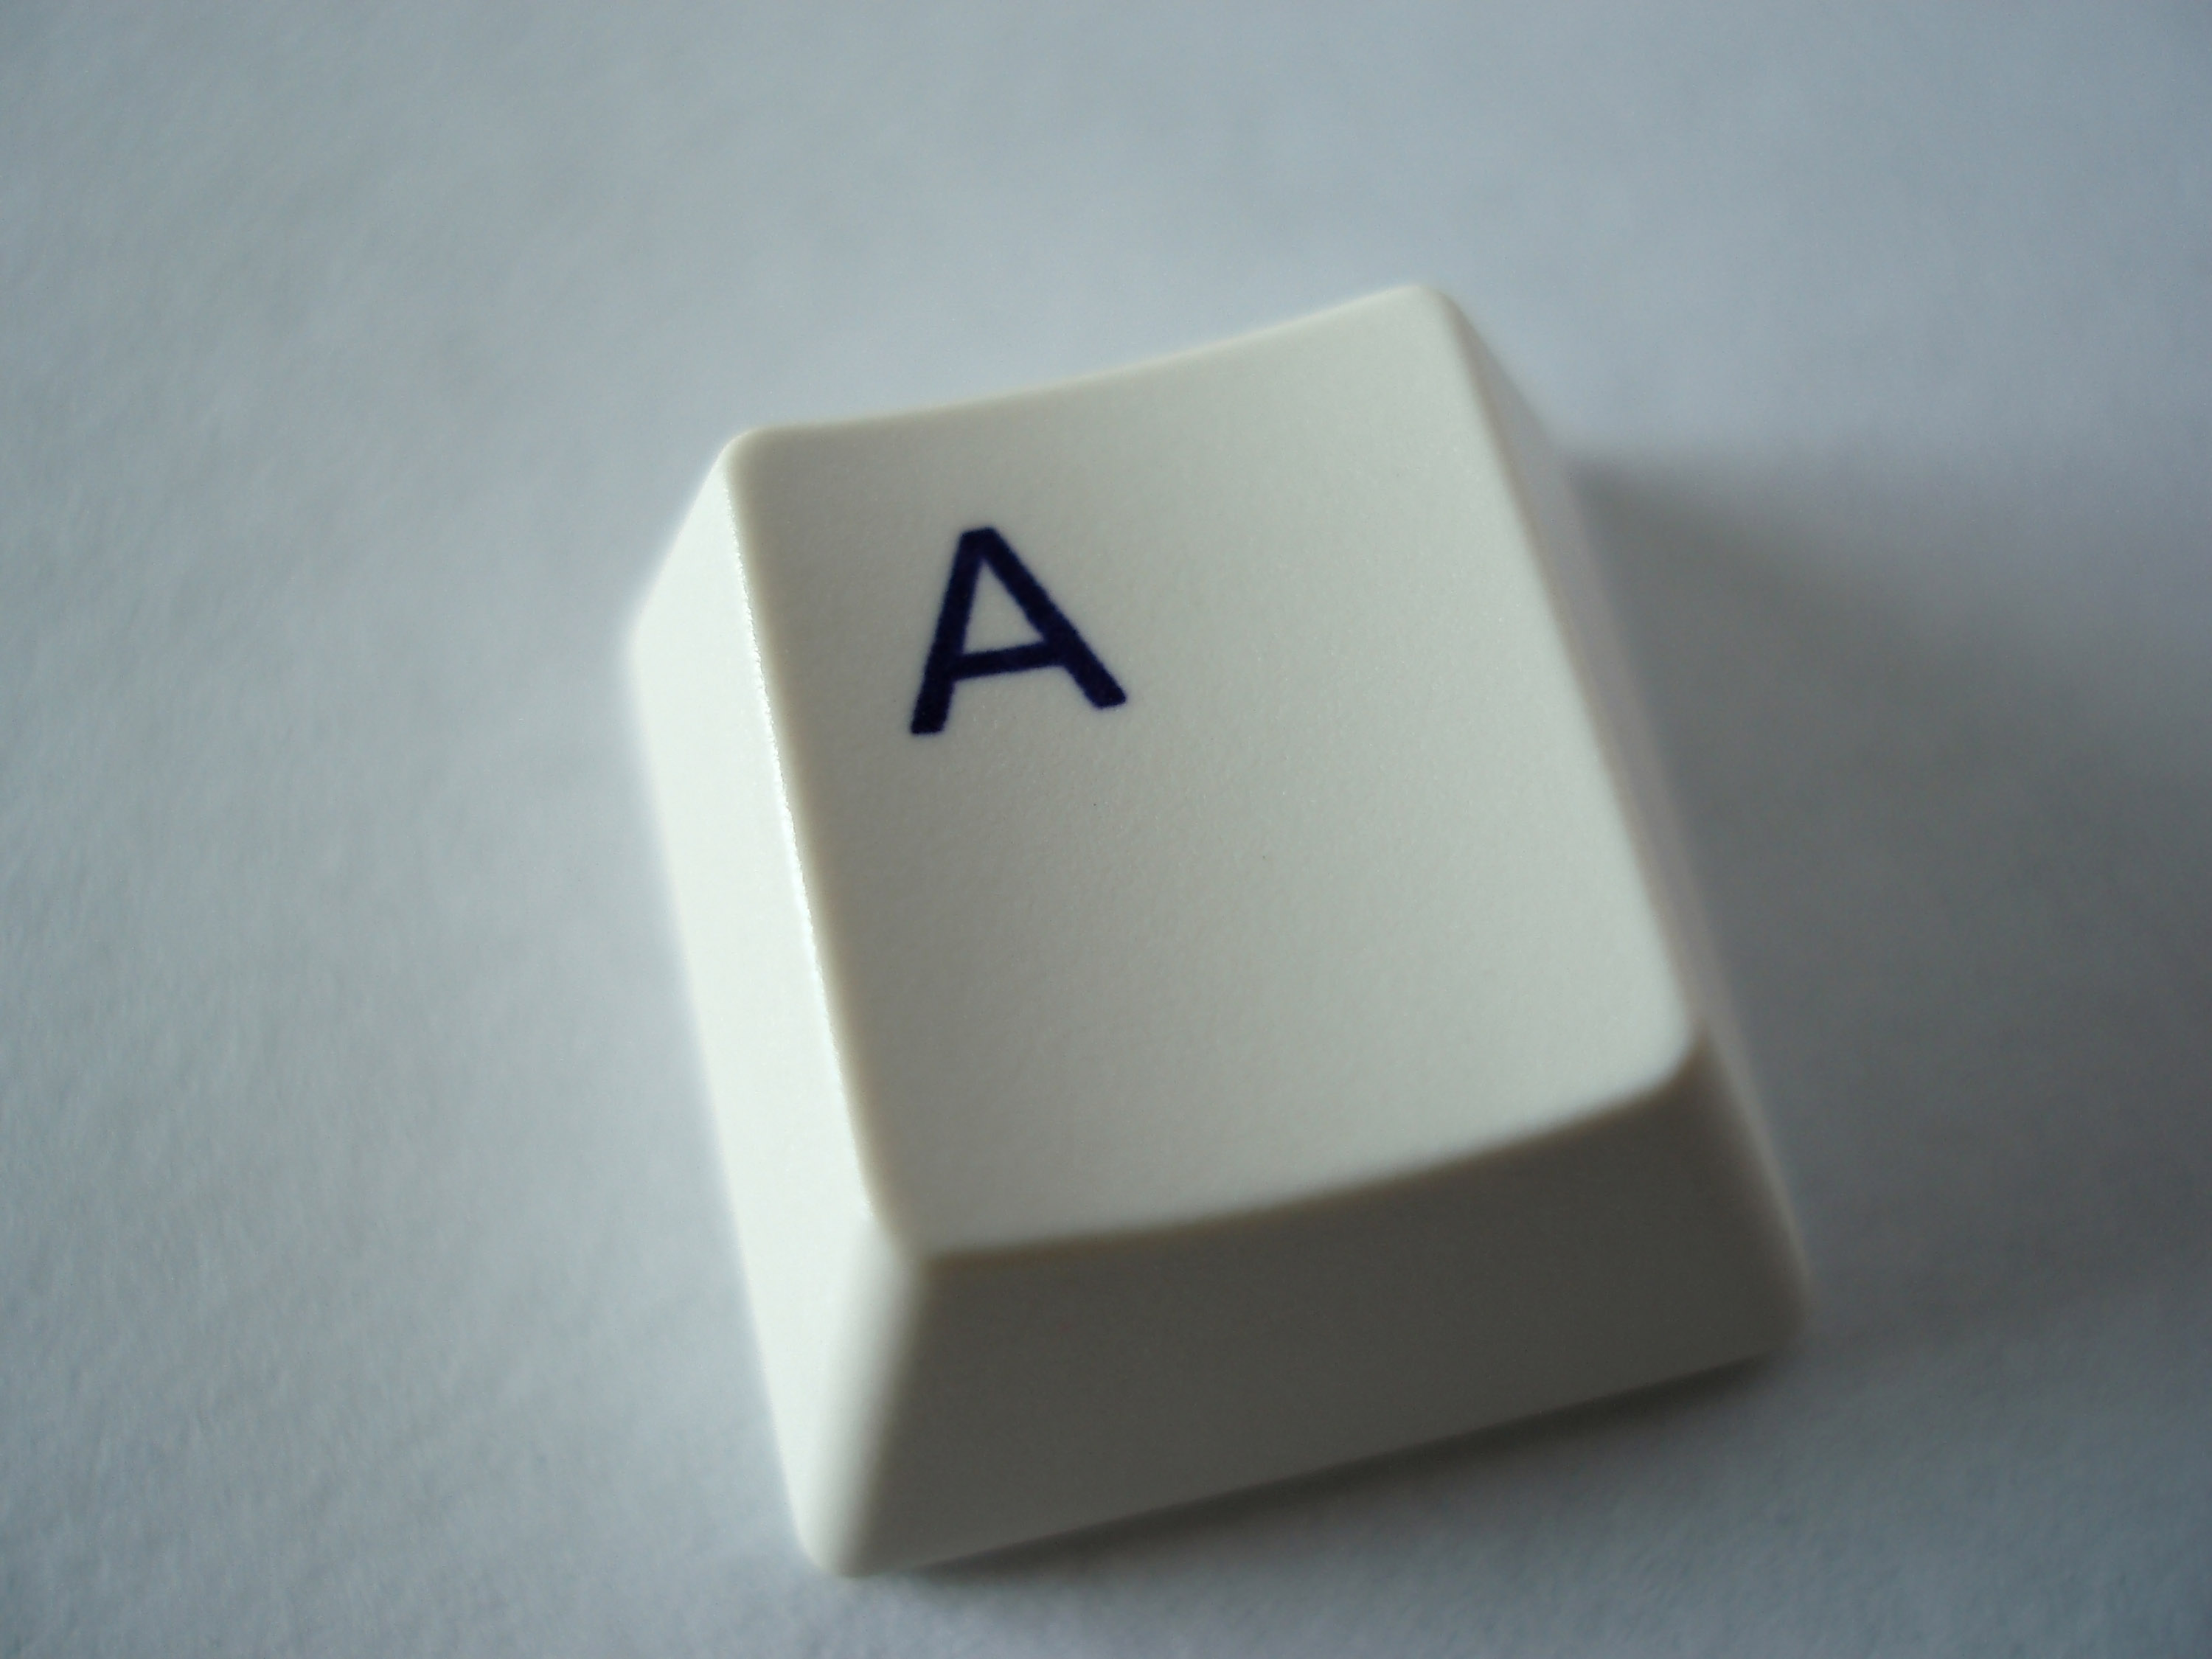 the letter A key removed from a computer keyboard, concept start here ...